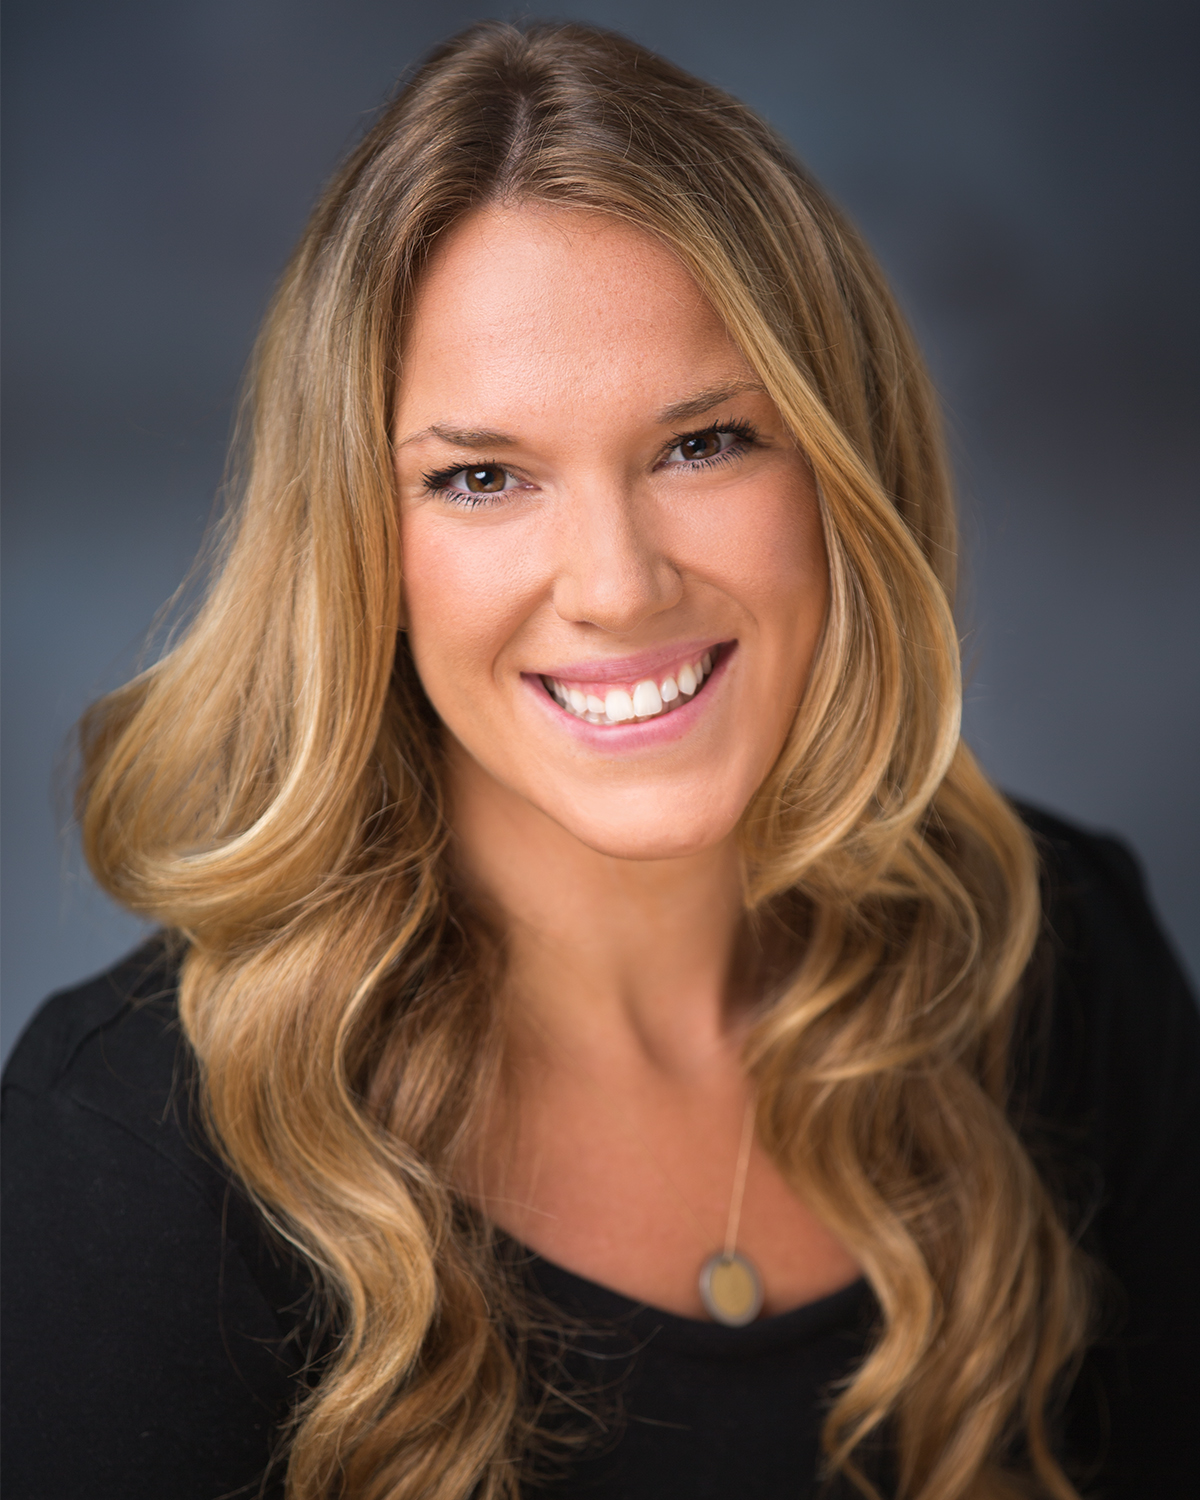 Bailey A. Hasty, PA-C, MPAS - Physician Assistant, Obstetrics and Gynecology, Portland, OR